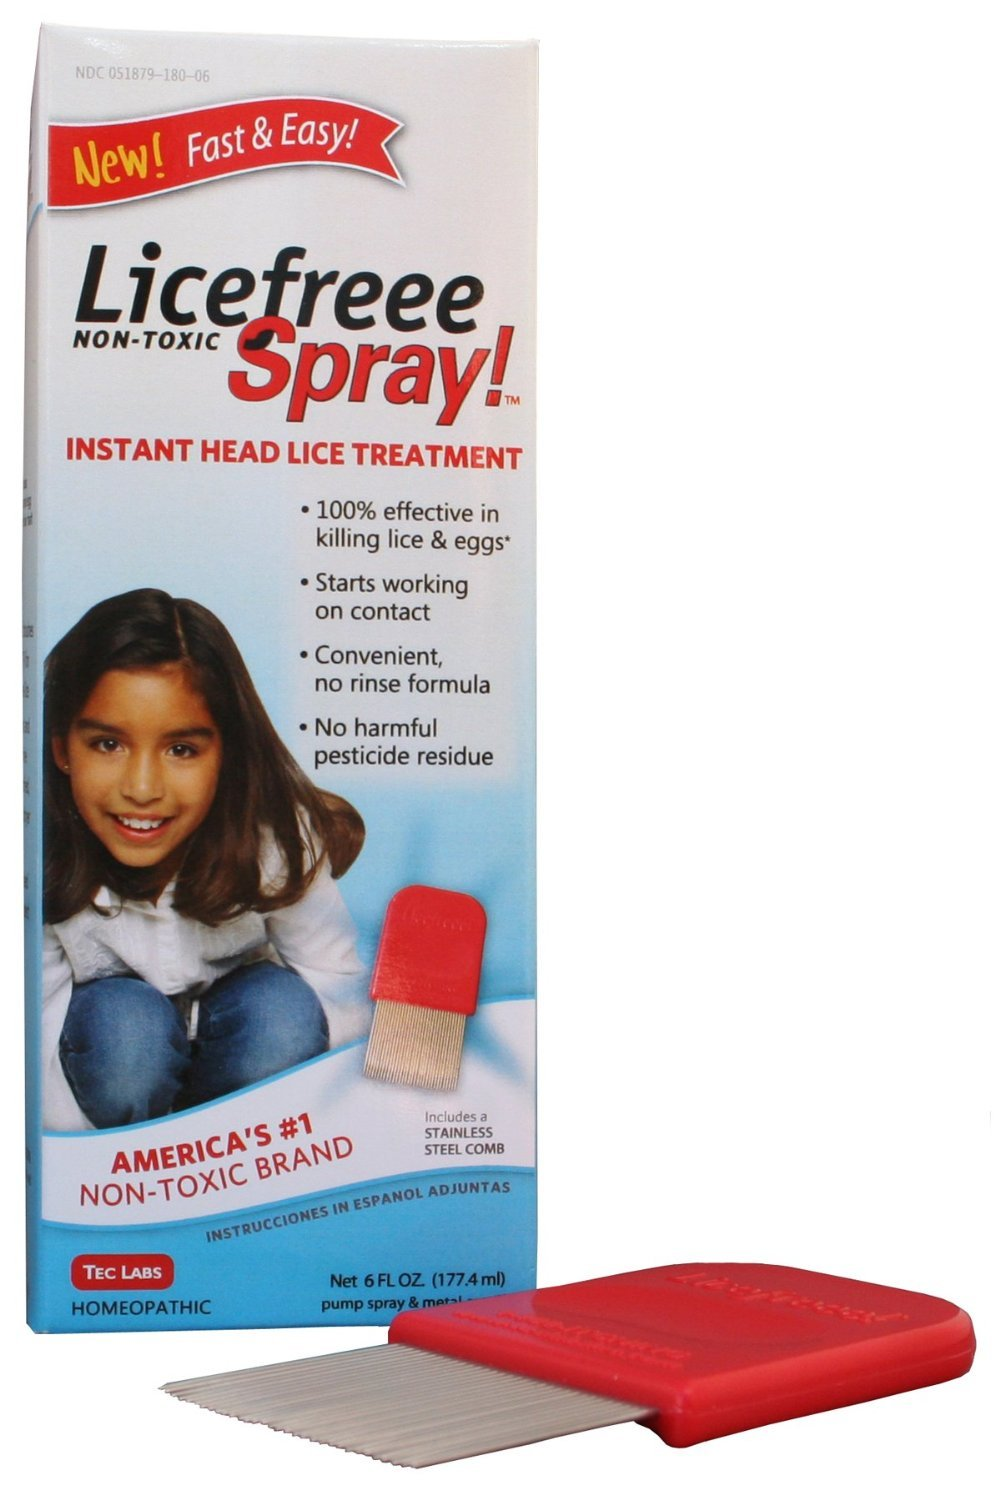 PACK OF 3 - LICE FREEE SPRAY NON-TOXIC 6OZ